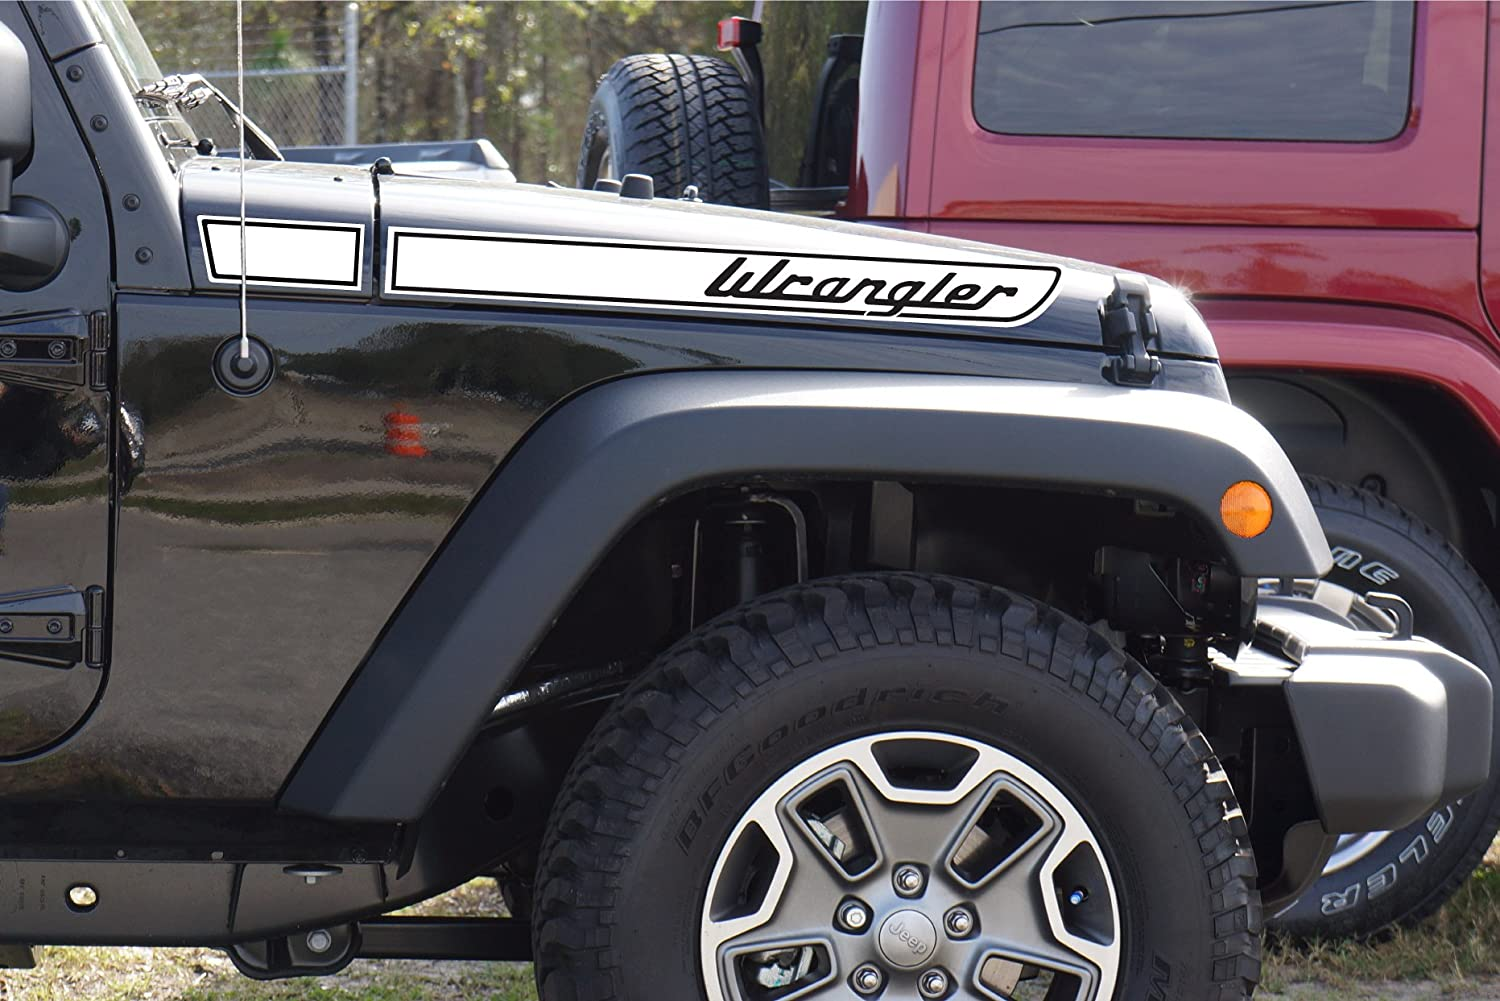 The Pixel Hut gs00141 Gloss White 2007-2018 single color Wrangler Retro Hood Decals for Jeep Wrangler JK